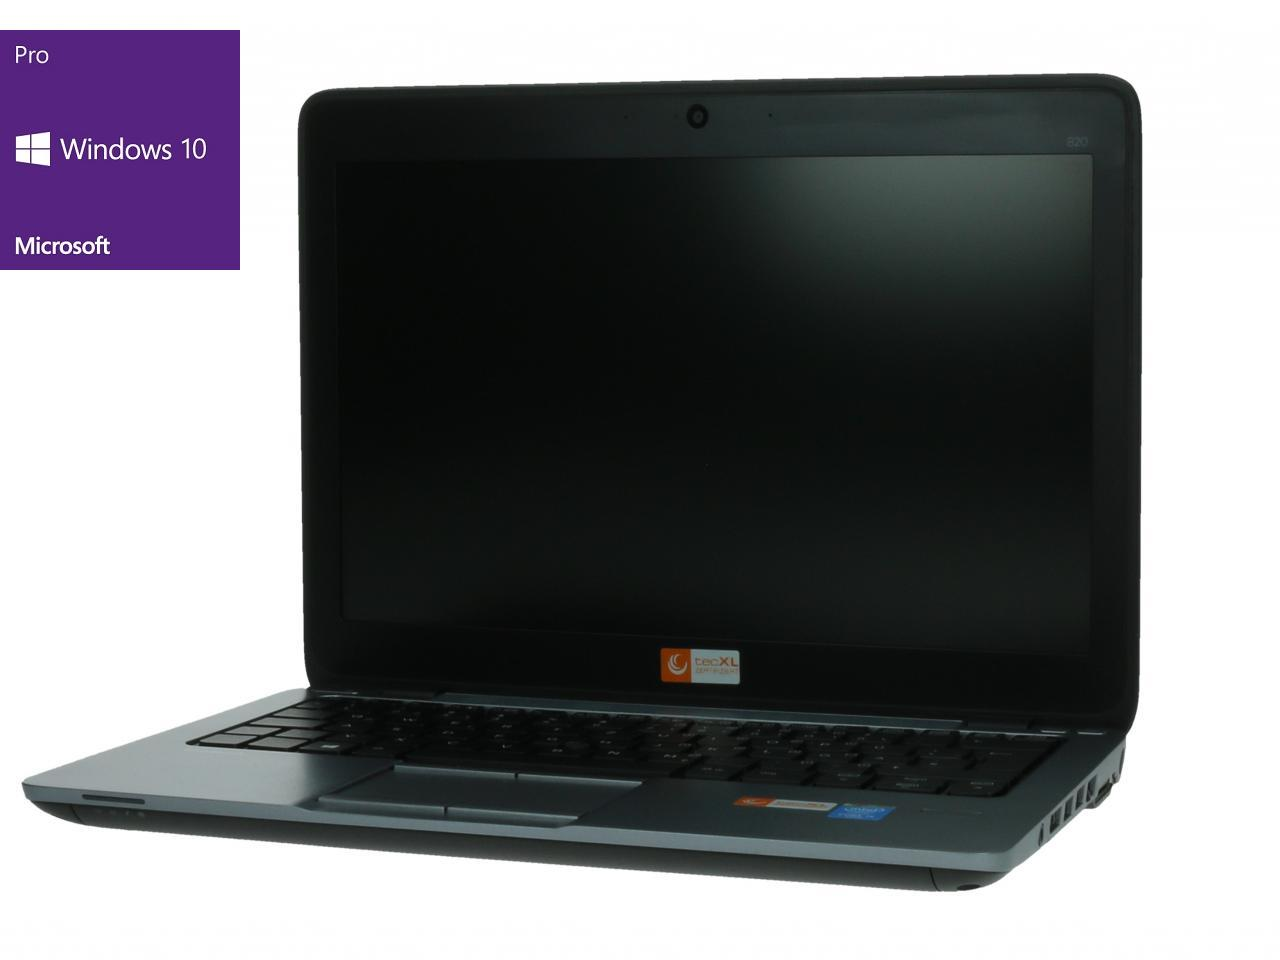 Hewlett Packard EliteBook 820 G1  - shop.bb-net.de